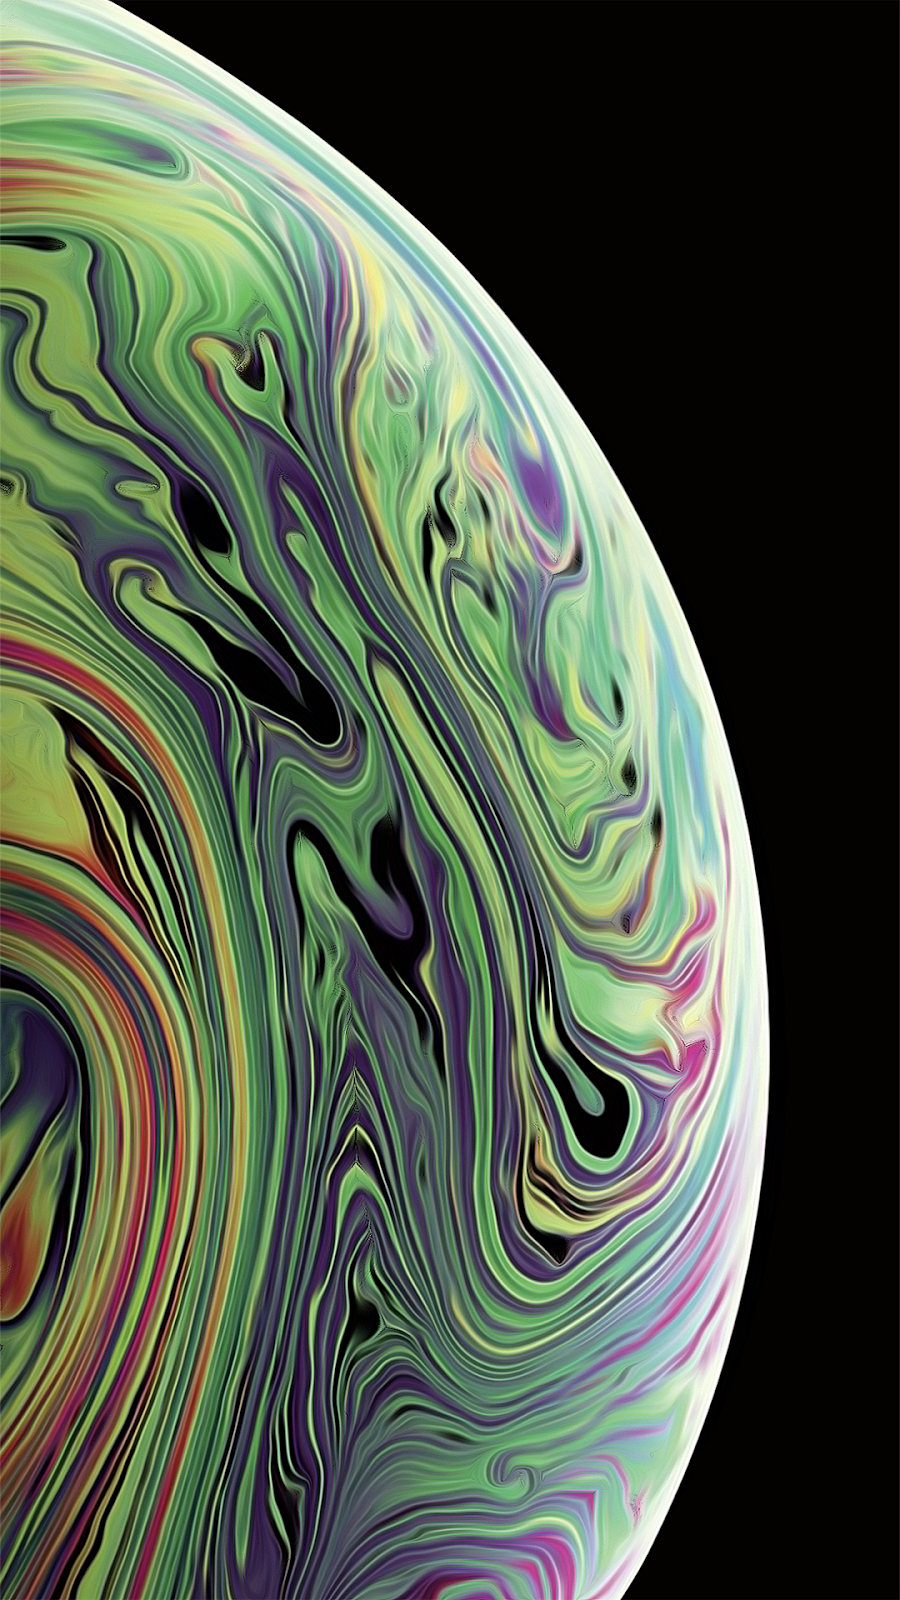 Iphone Xs Xs Max V3 V4 Wallpaper By Ar72014 Wallpaper Hidup Iphone Wallpaper Hd Iphone Wallpaper Android